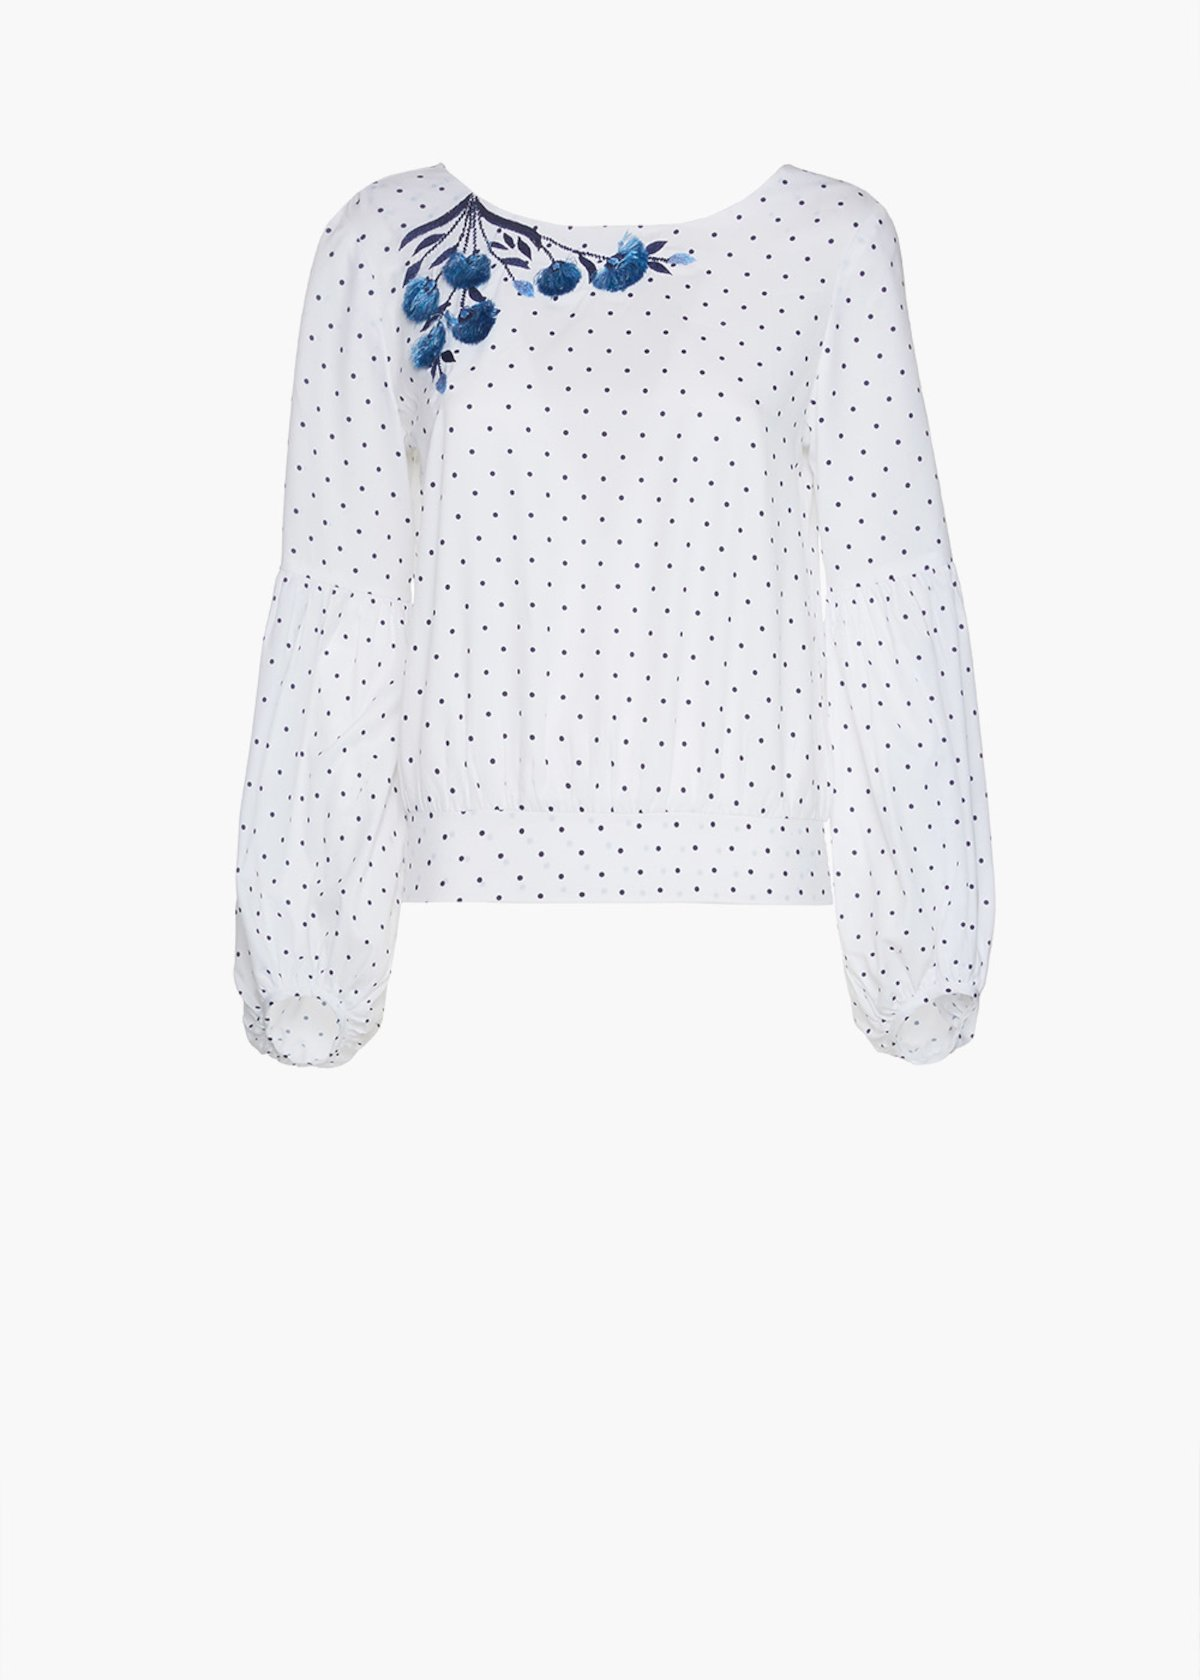 Cyprien blouse with polka dot print and boat neckline